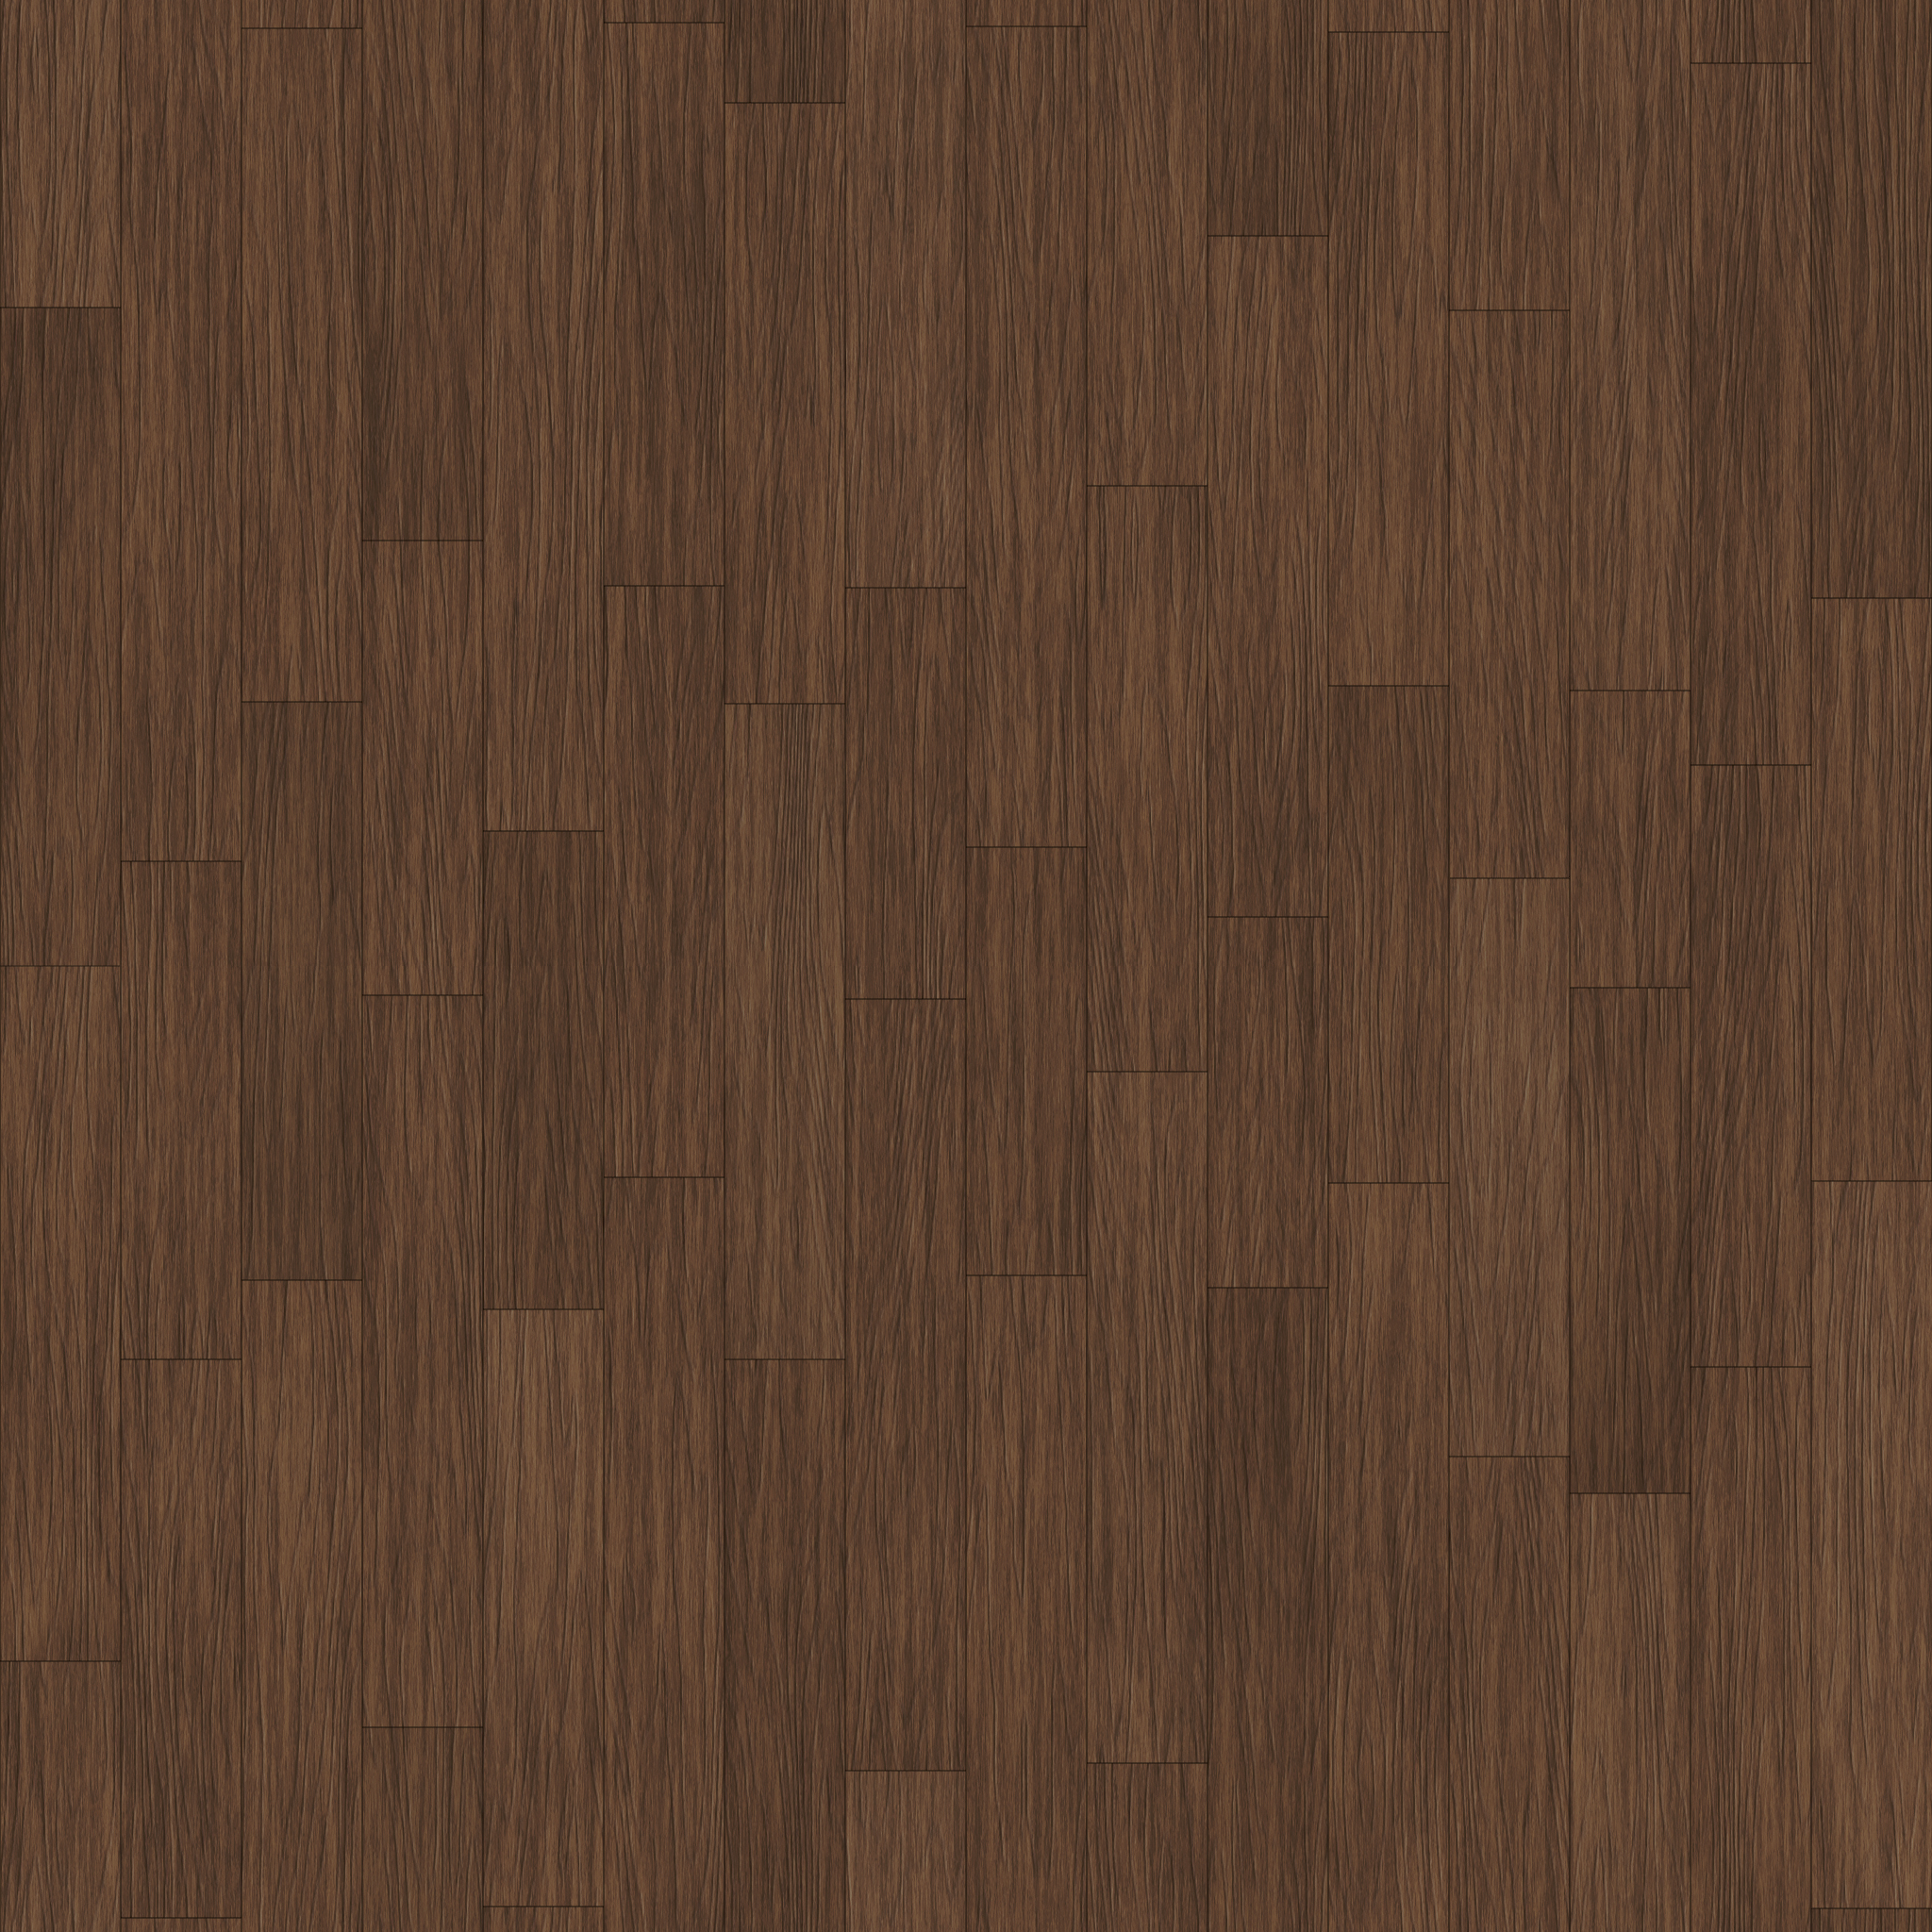 More Like Dark Wooden Floor Texture Tileable Wood. Hardwood Floor Texture Seamless   Gurus Floor